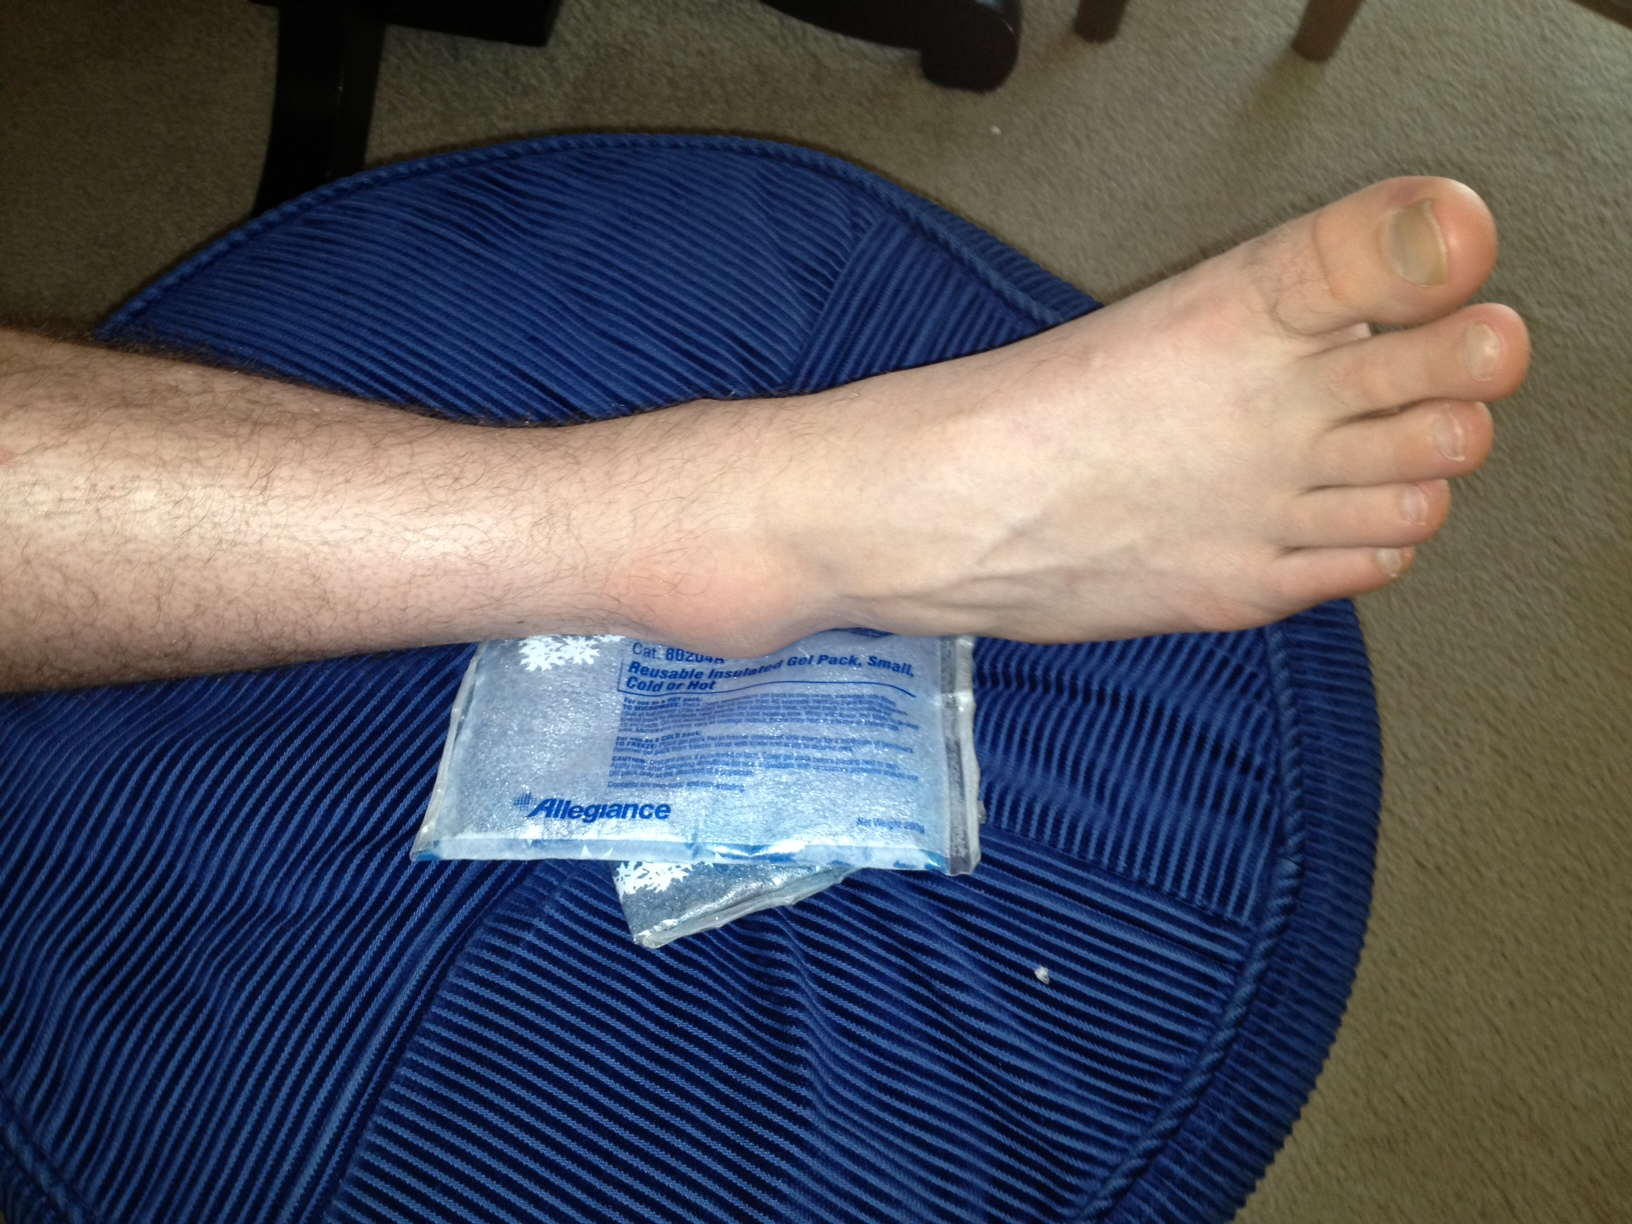 James' ankle